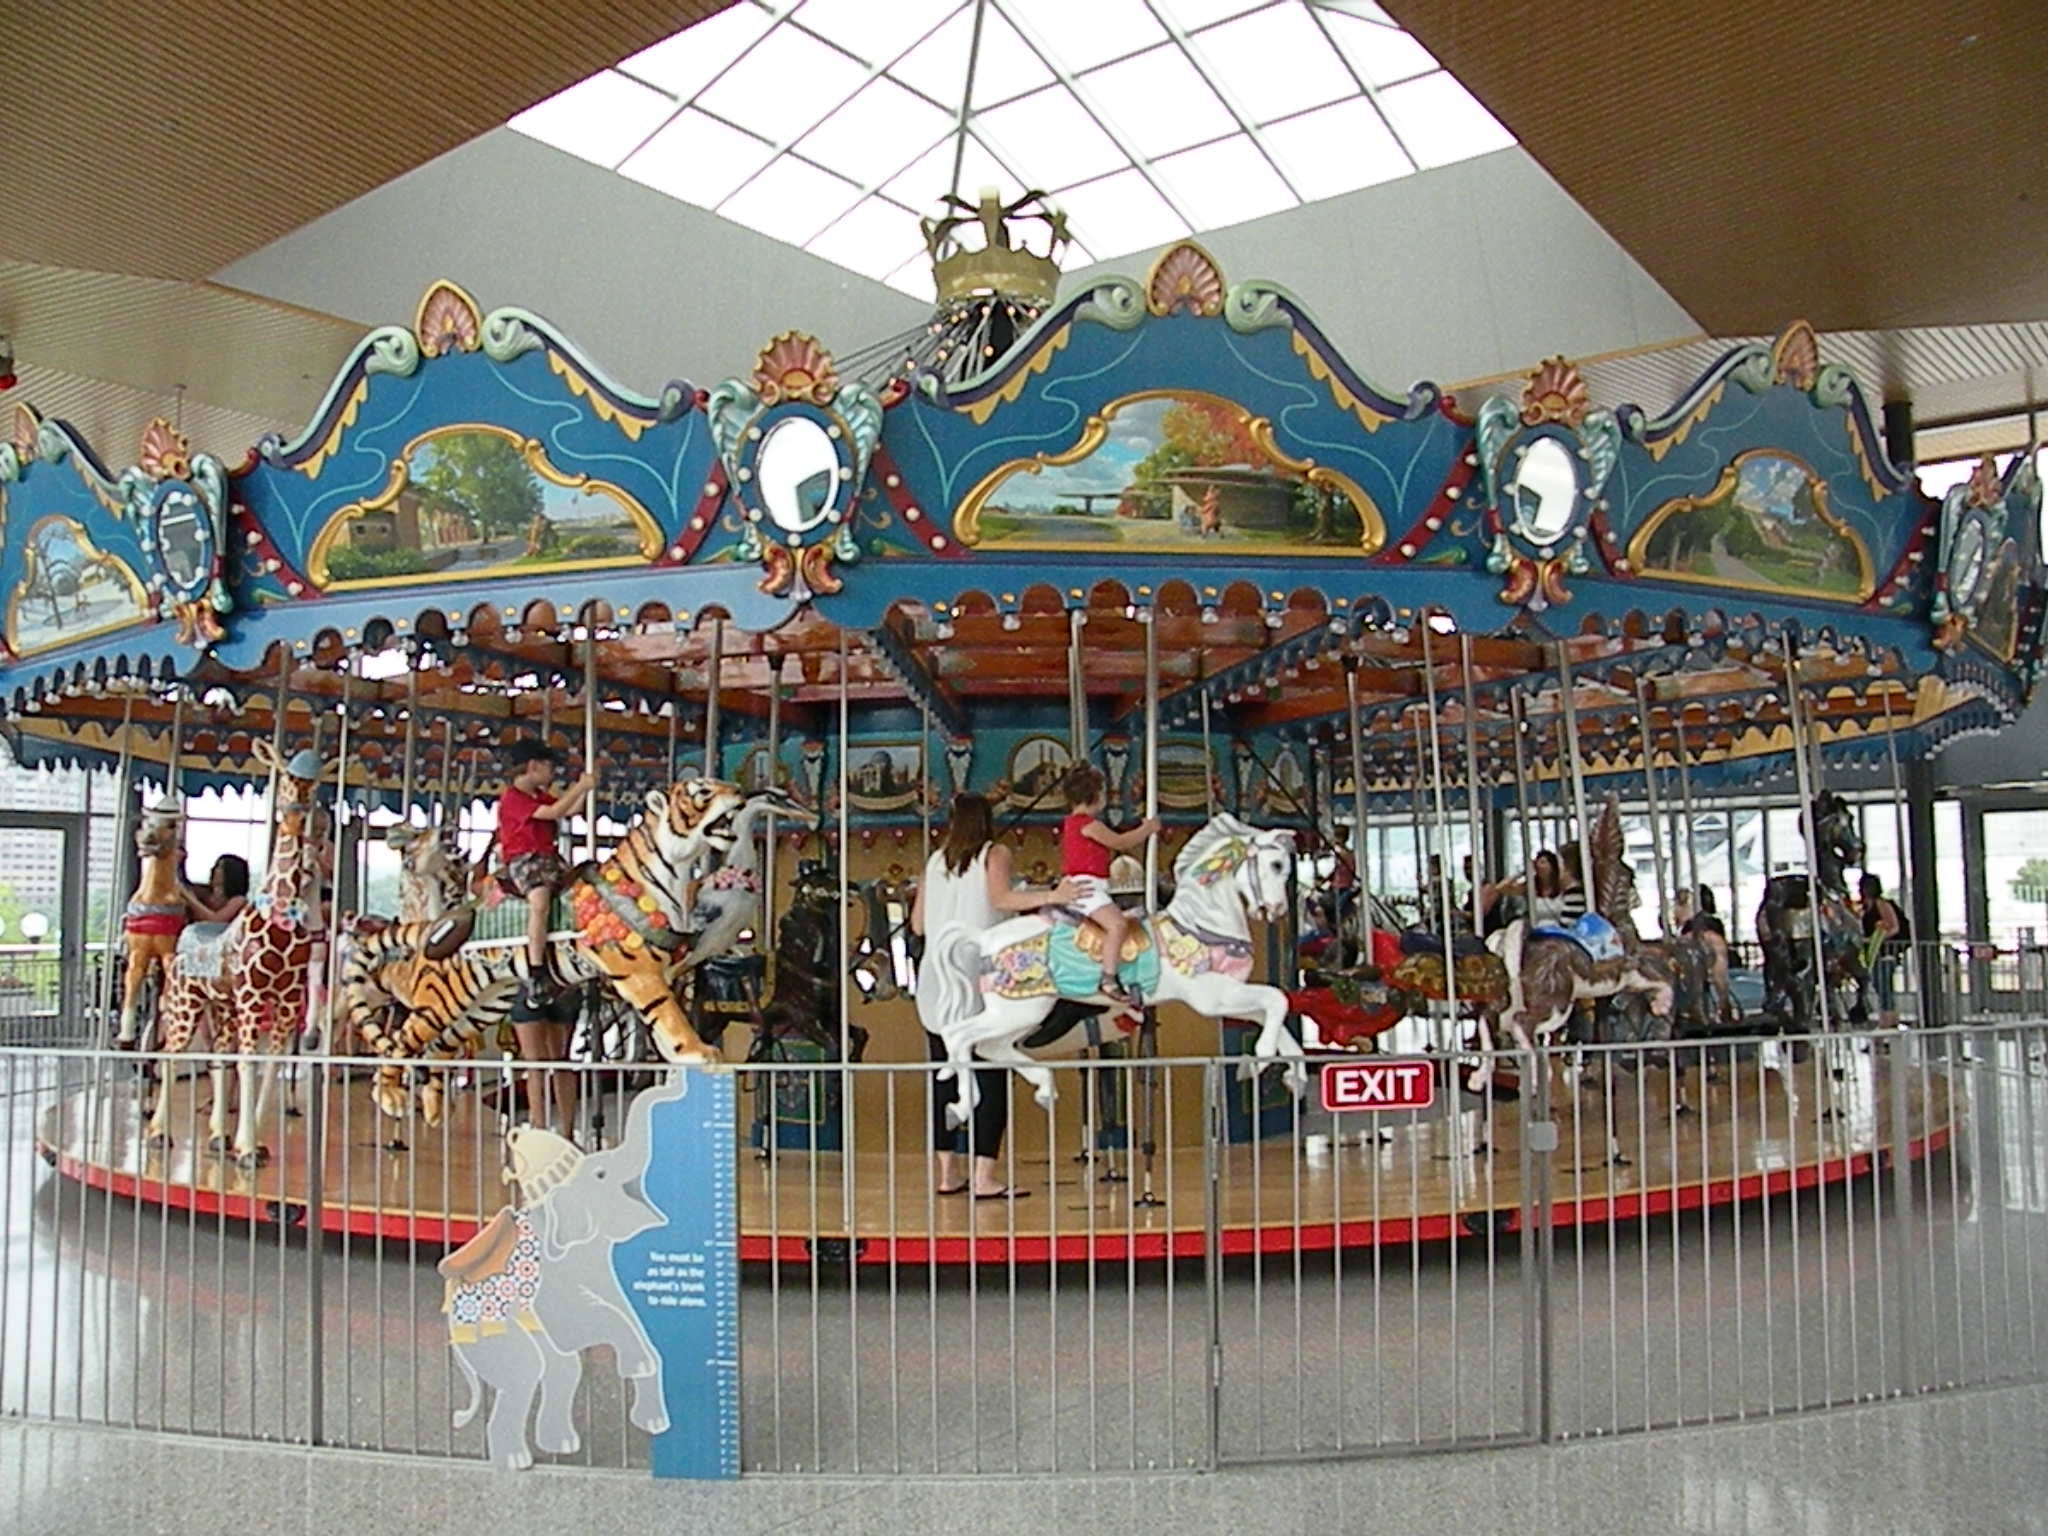 Smale Riverfront Park opens (Carousel too)